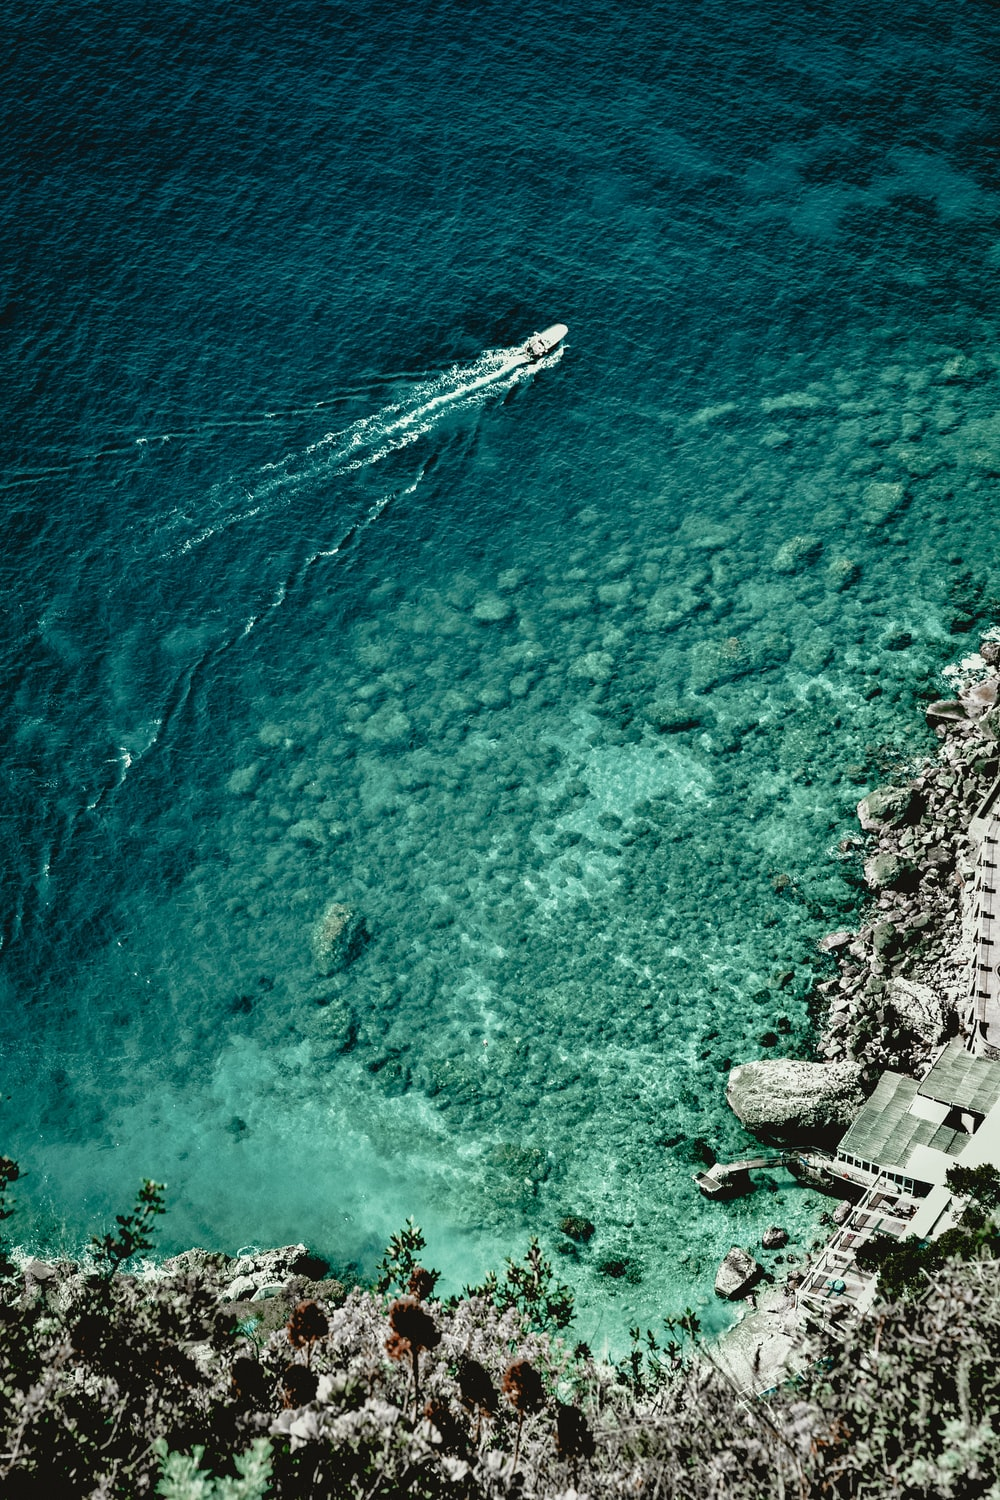 boat at sea during daytime in aerial photography